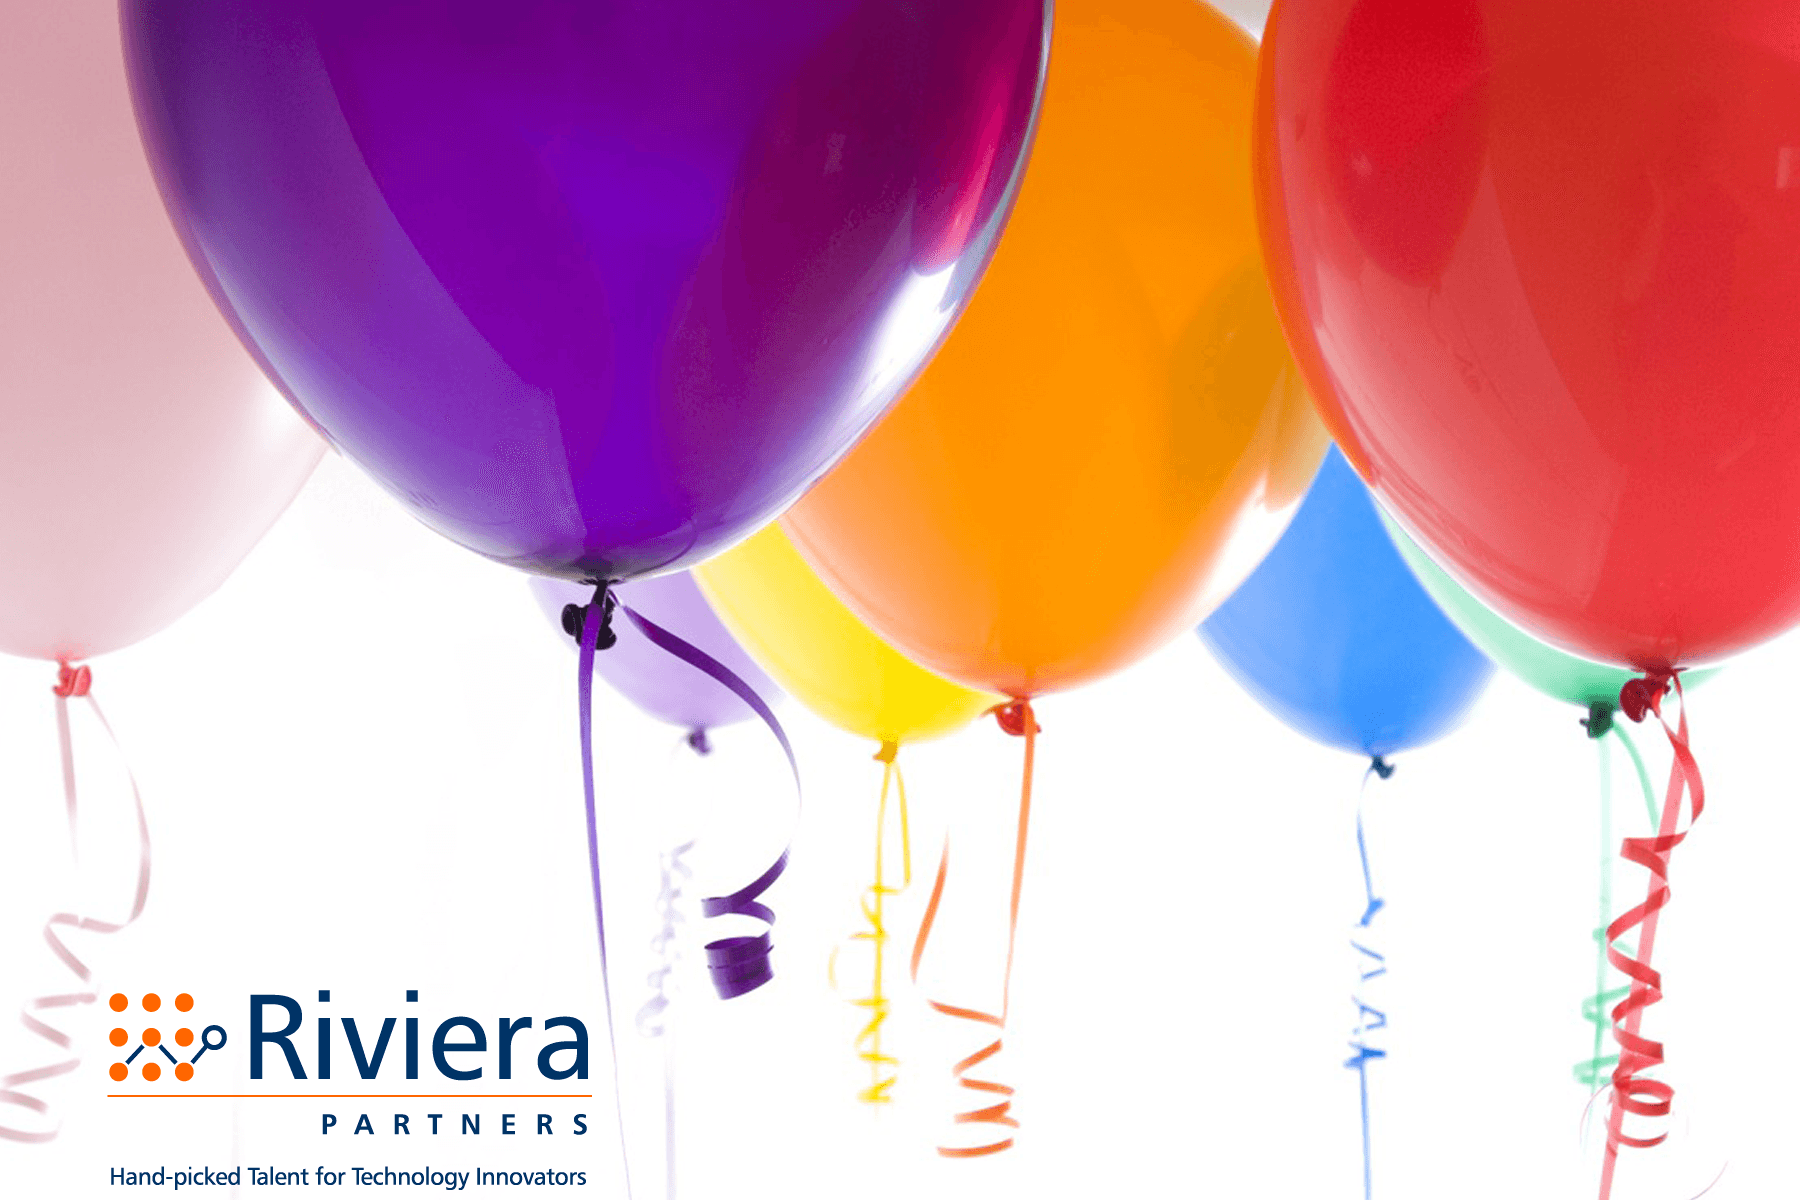 Riviera Partners Named #1253 to the Inc. 500|5000 List